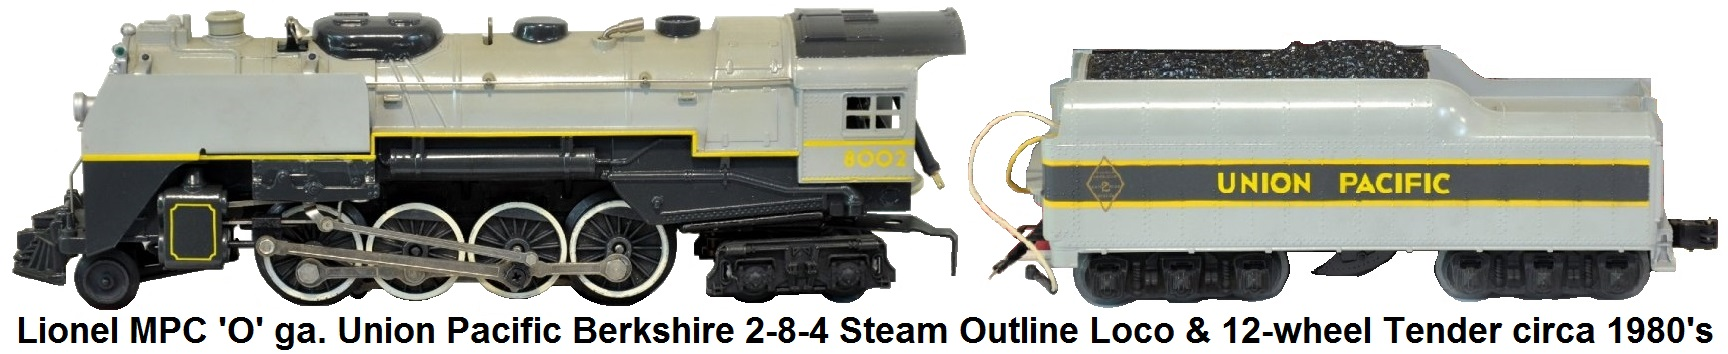 Lionel MPC 'O' gauge #6-8002 Berkshire 2-8-4 steam outline locomotive and 12-wheel tender circa 1980